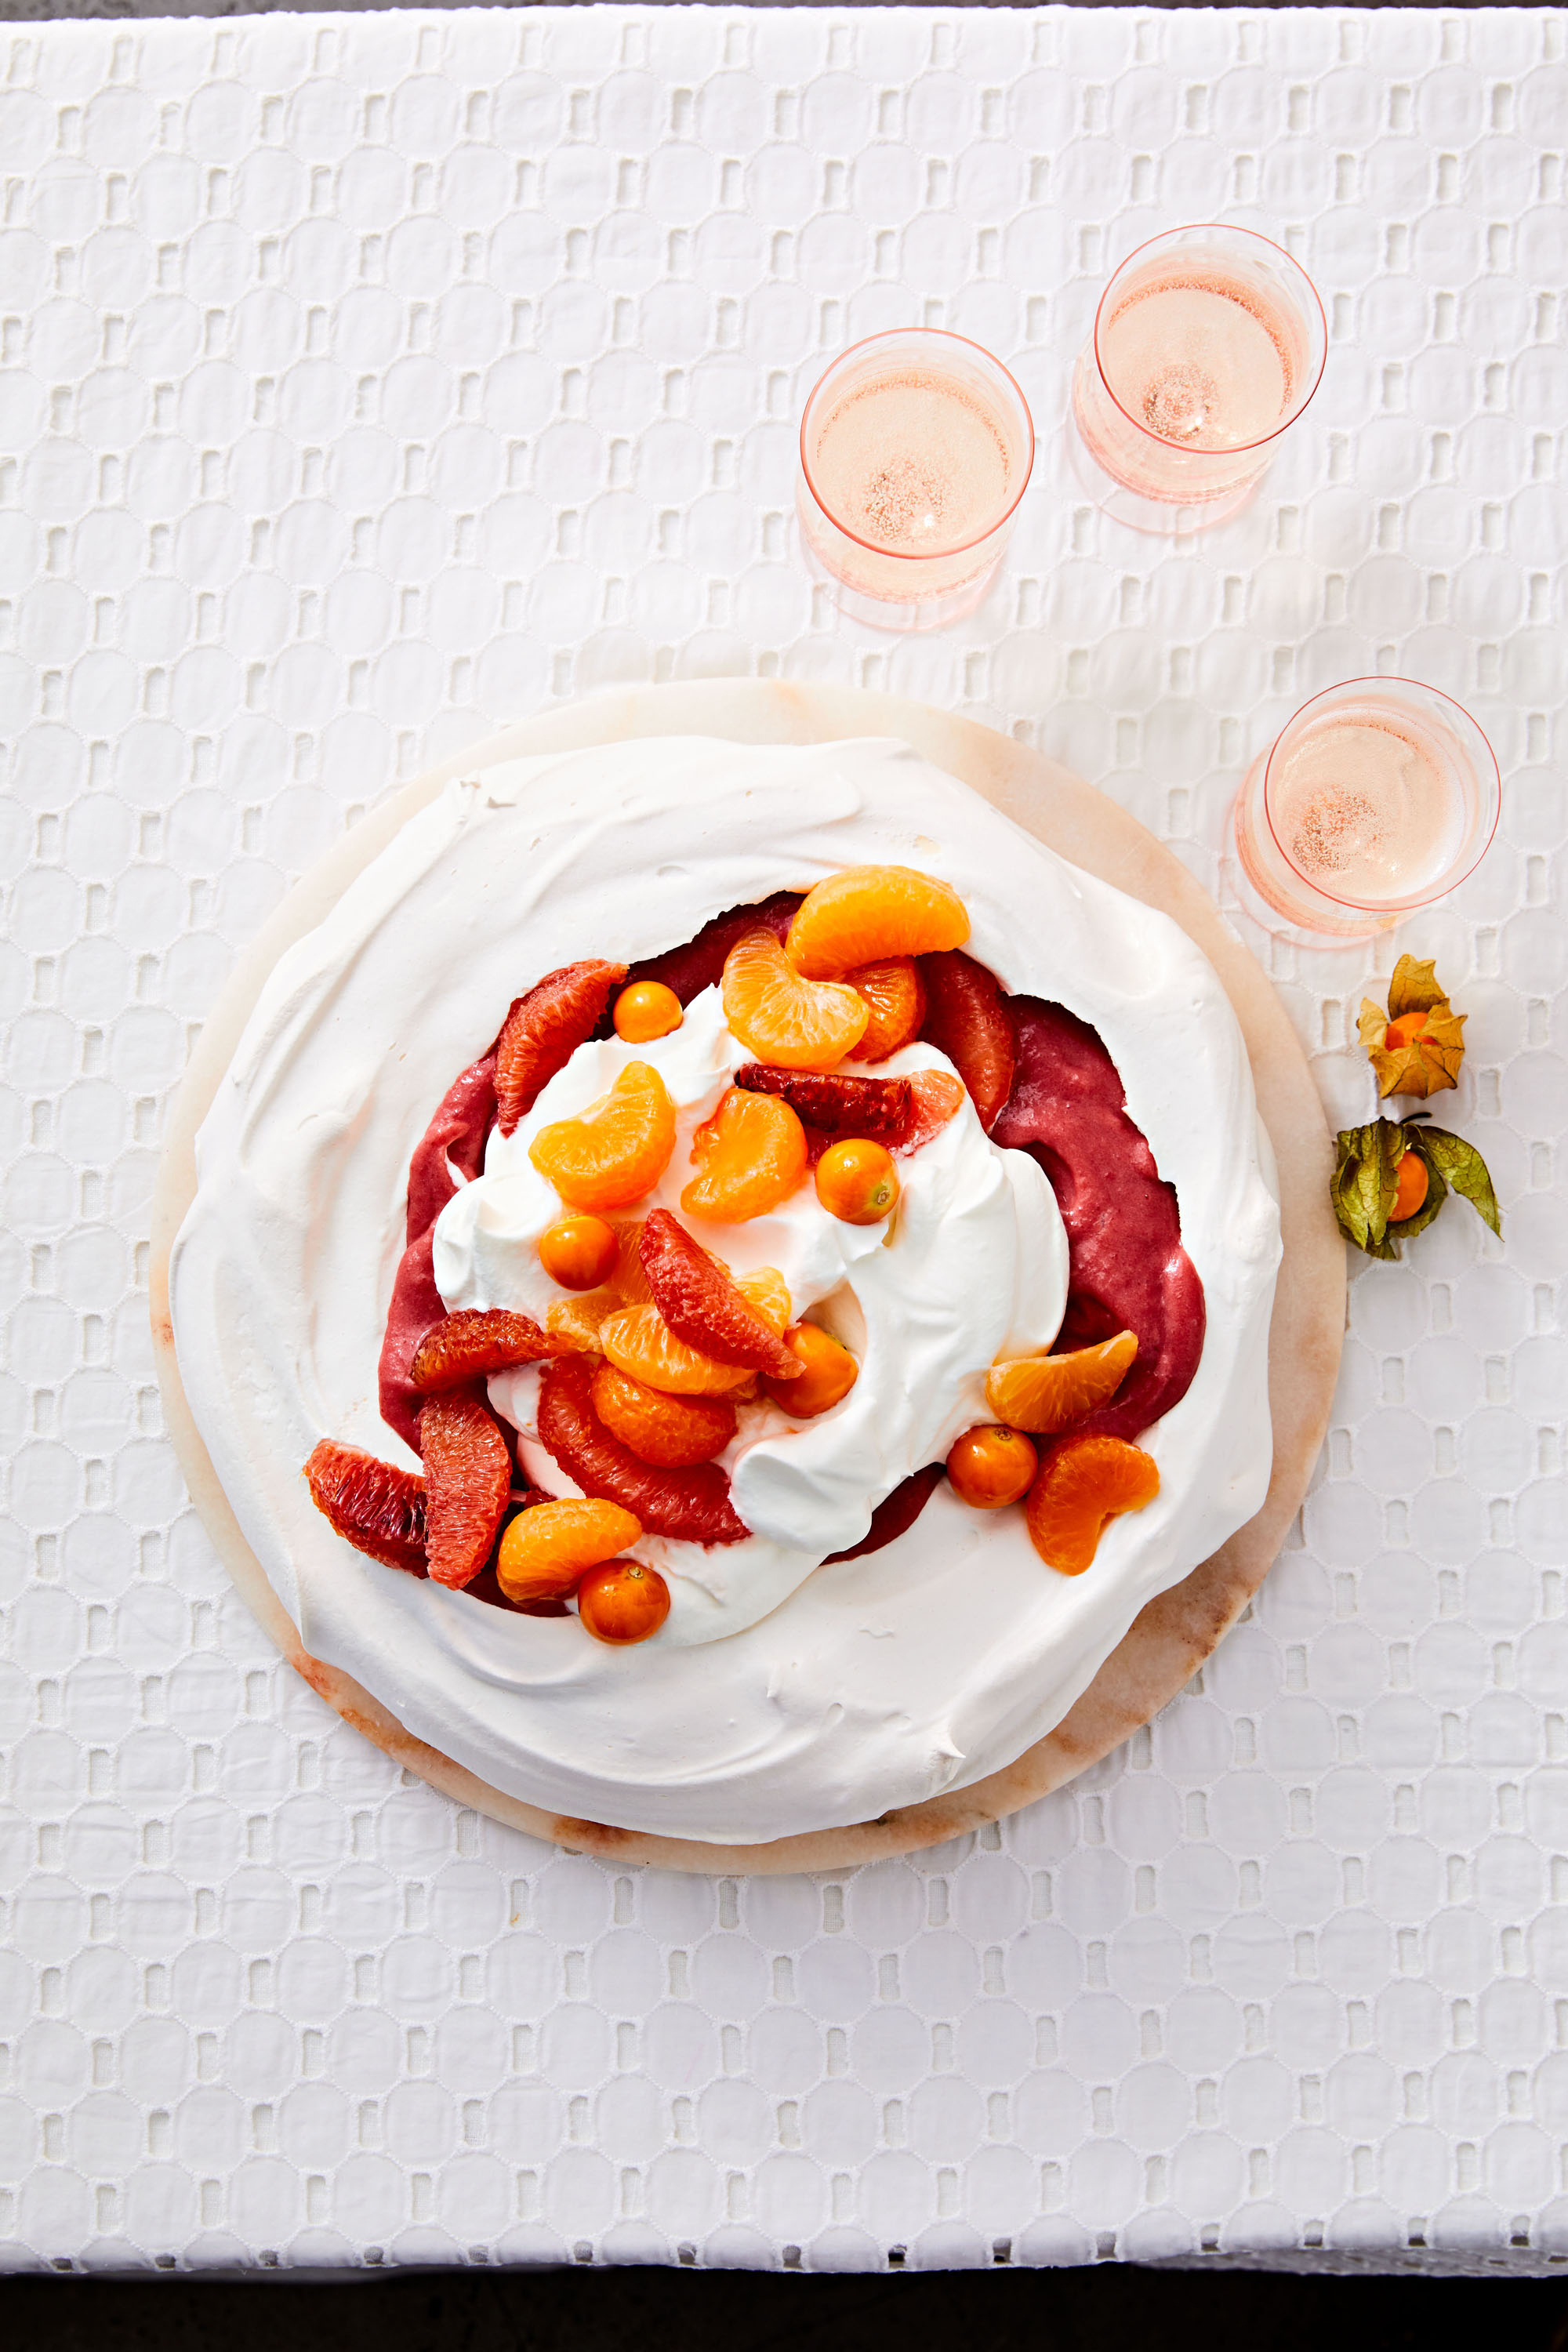 cranberry curd and citrus pavlova with sliced oranges